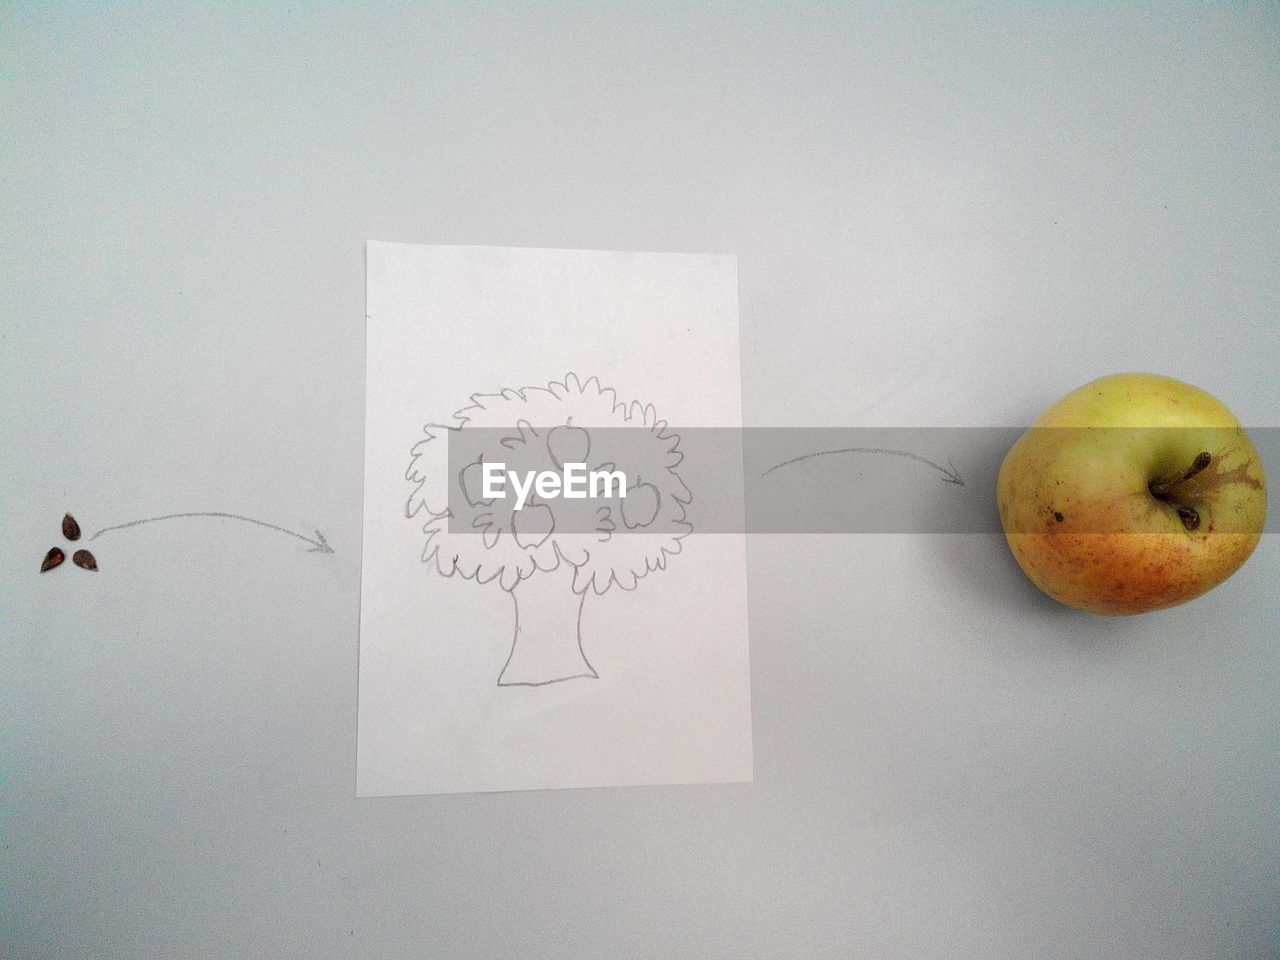 fruit, food, drawing - art product, food and drink, healthy eating, indoors, still life, apple - fruit, wellbeing, creativity, paper, text, table, art and craft, copy space, western script, no people, directly above, studio shot, close-up